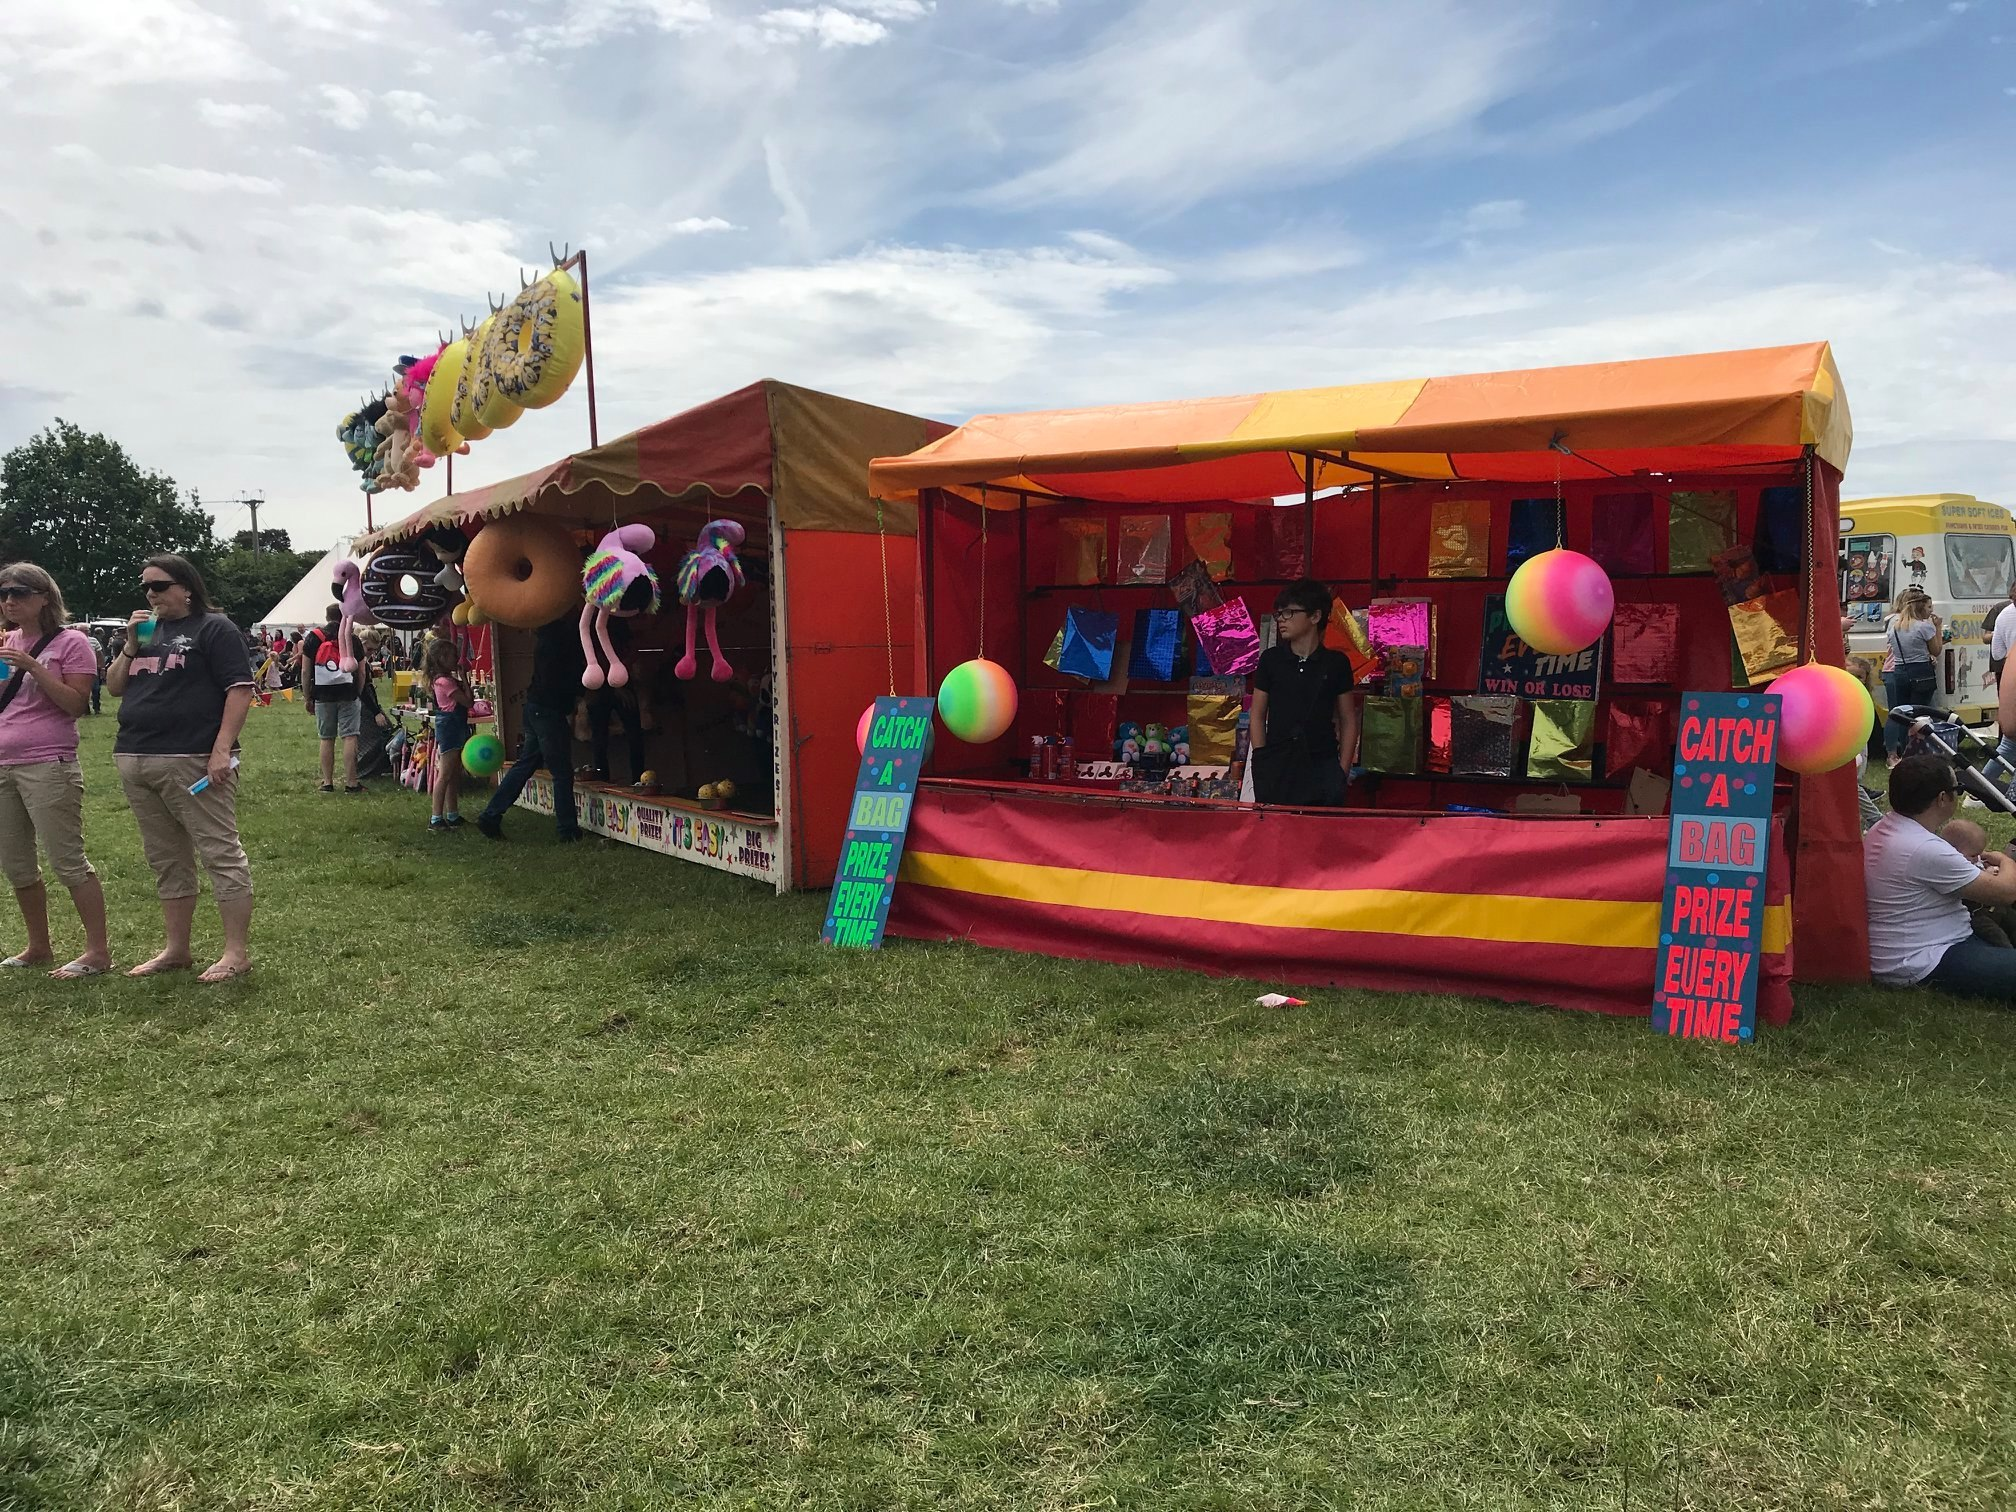 Treacle Fair 2018